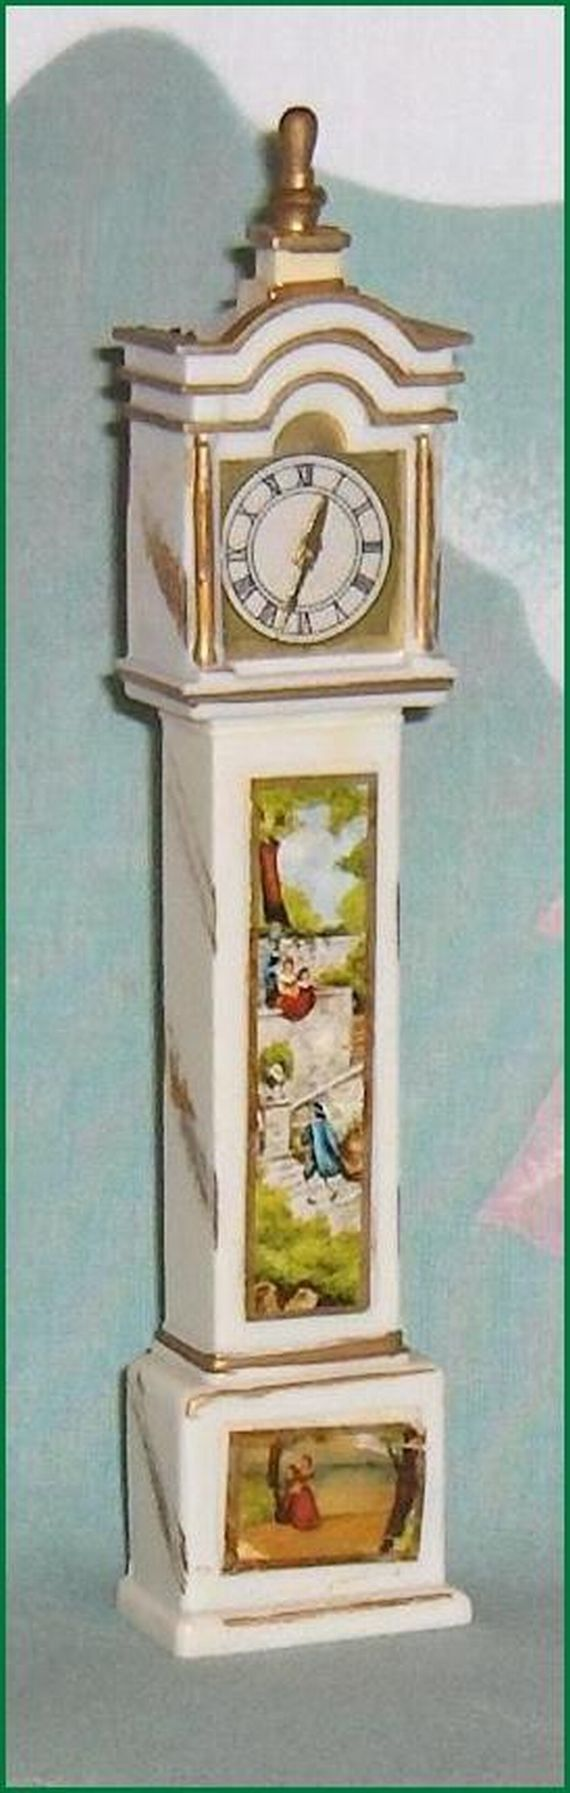 Vintage Dollhouse Furniture For Sale Part - 43: ON SALE Grandfather Clock Petite Princess Vintage Dollhouse Furniture